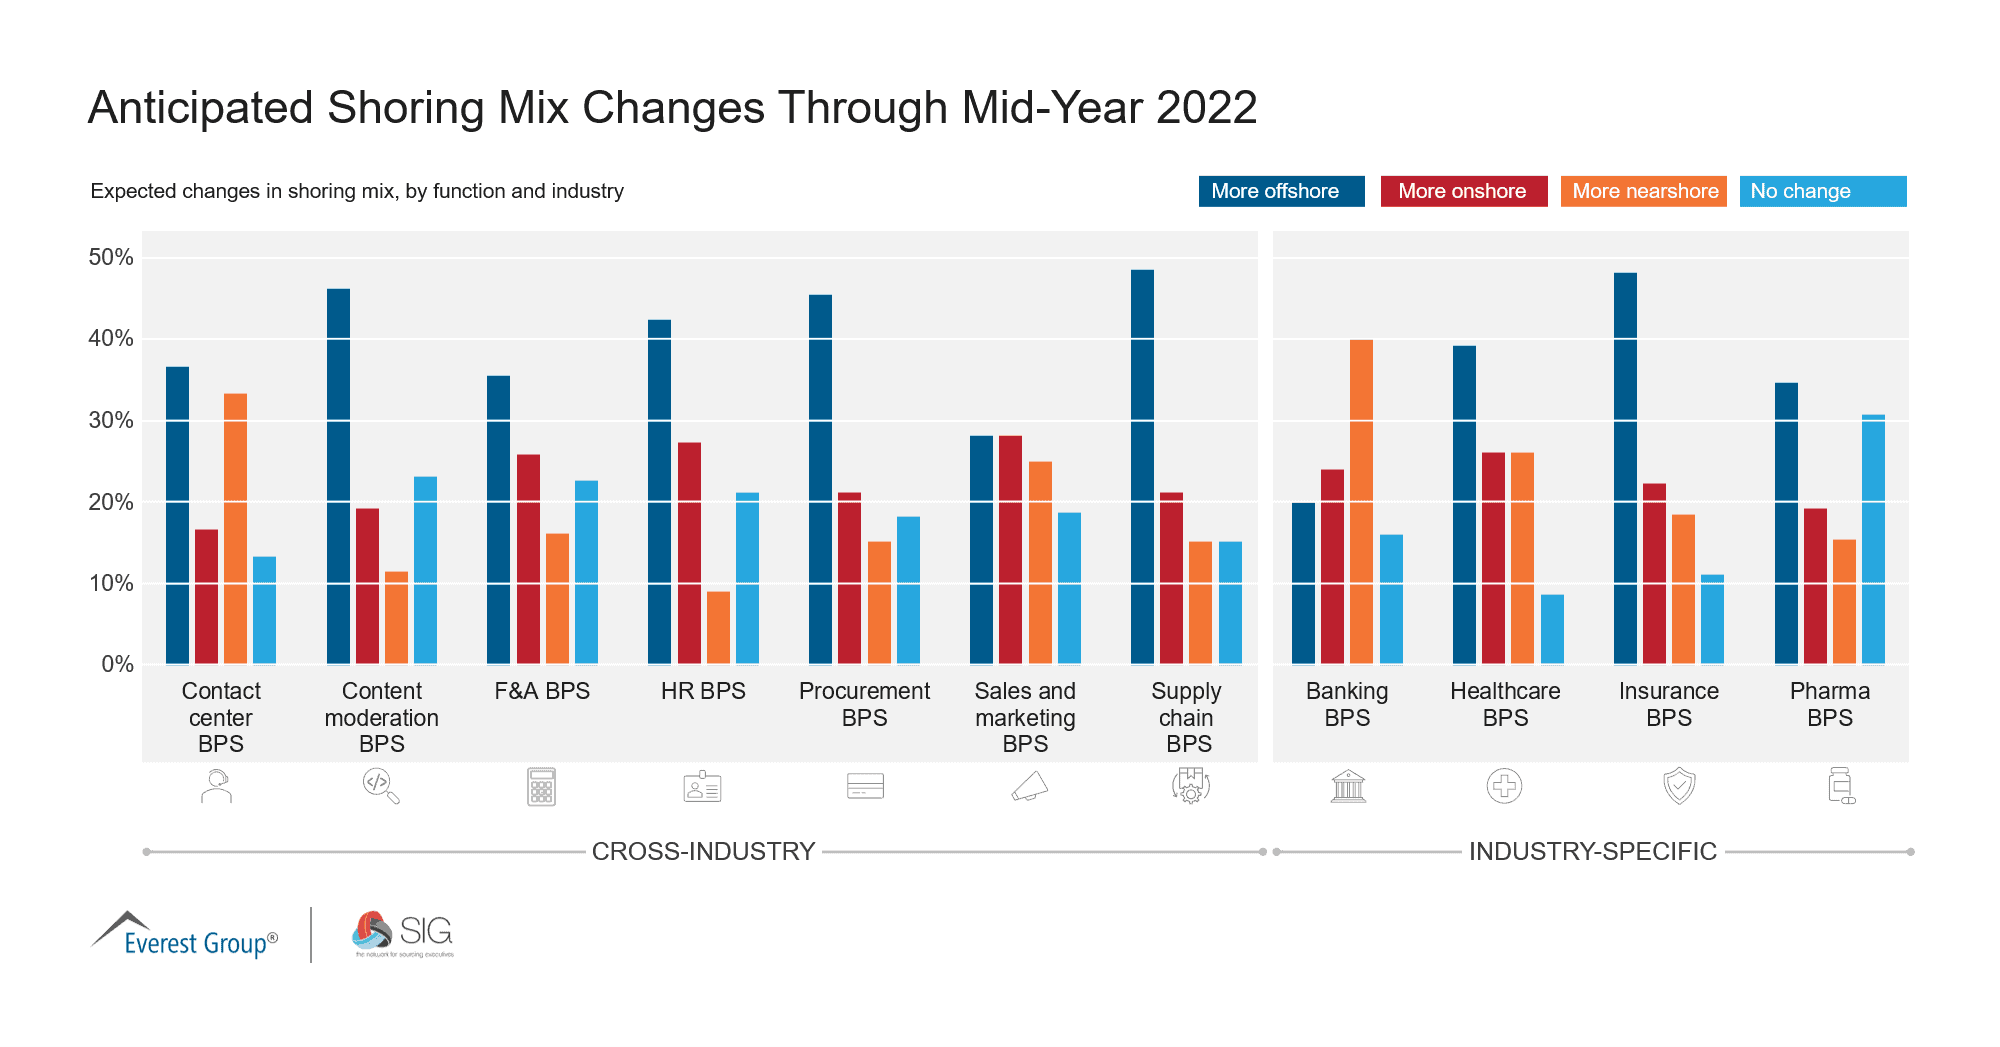 June 2021 Quick Poll | Anticipated Shoring Mix Changes Through Mid-Year 2022